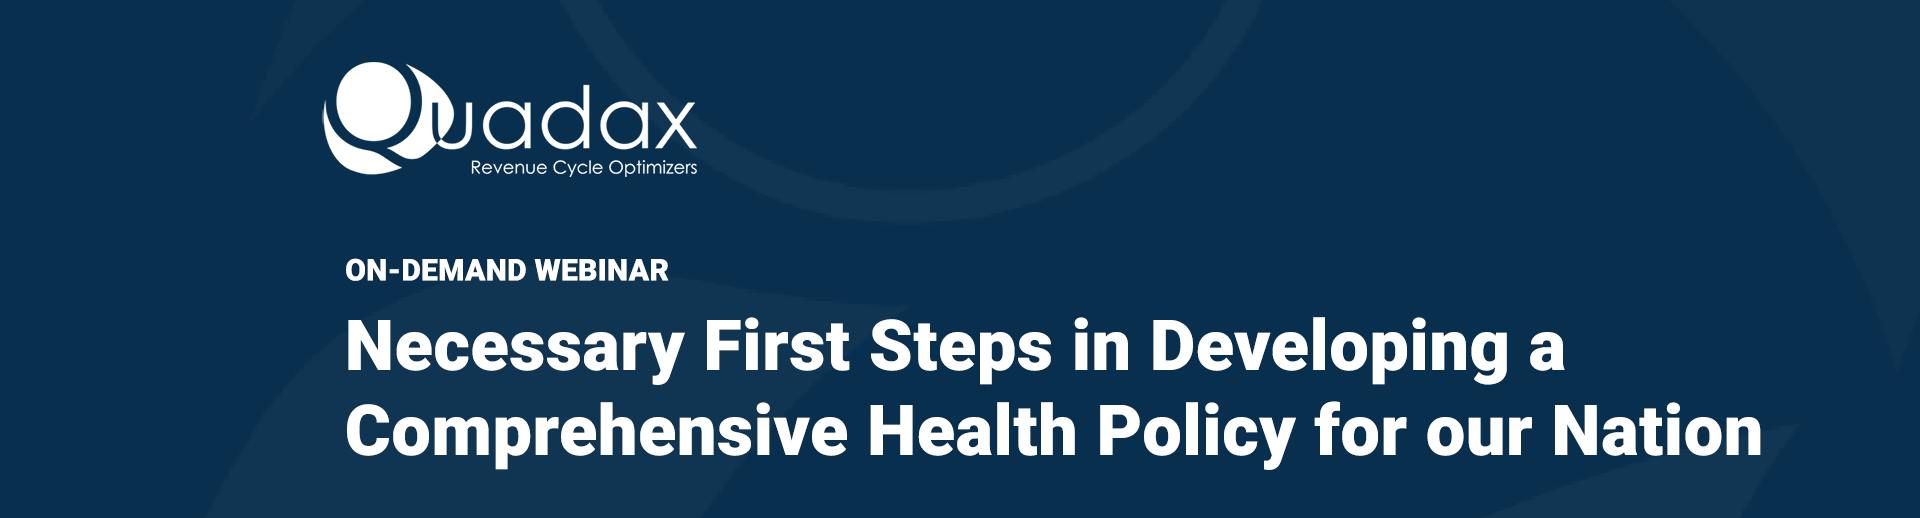 On-Demand-Webinar-Necessary-First-Steps-Health-Policy